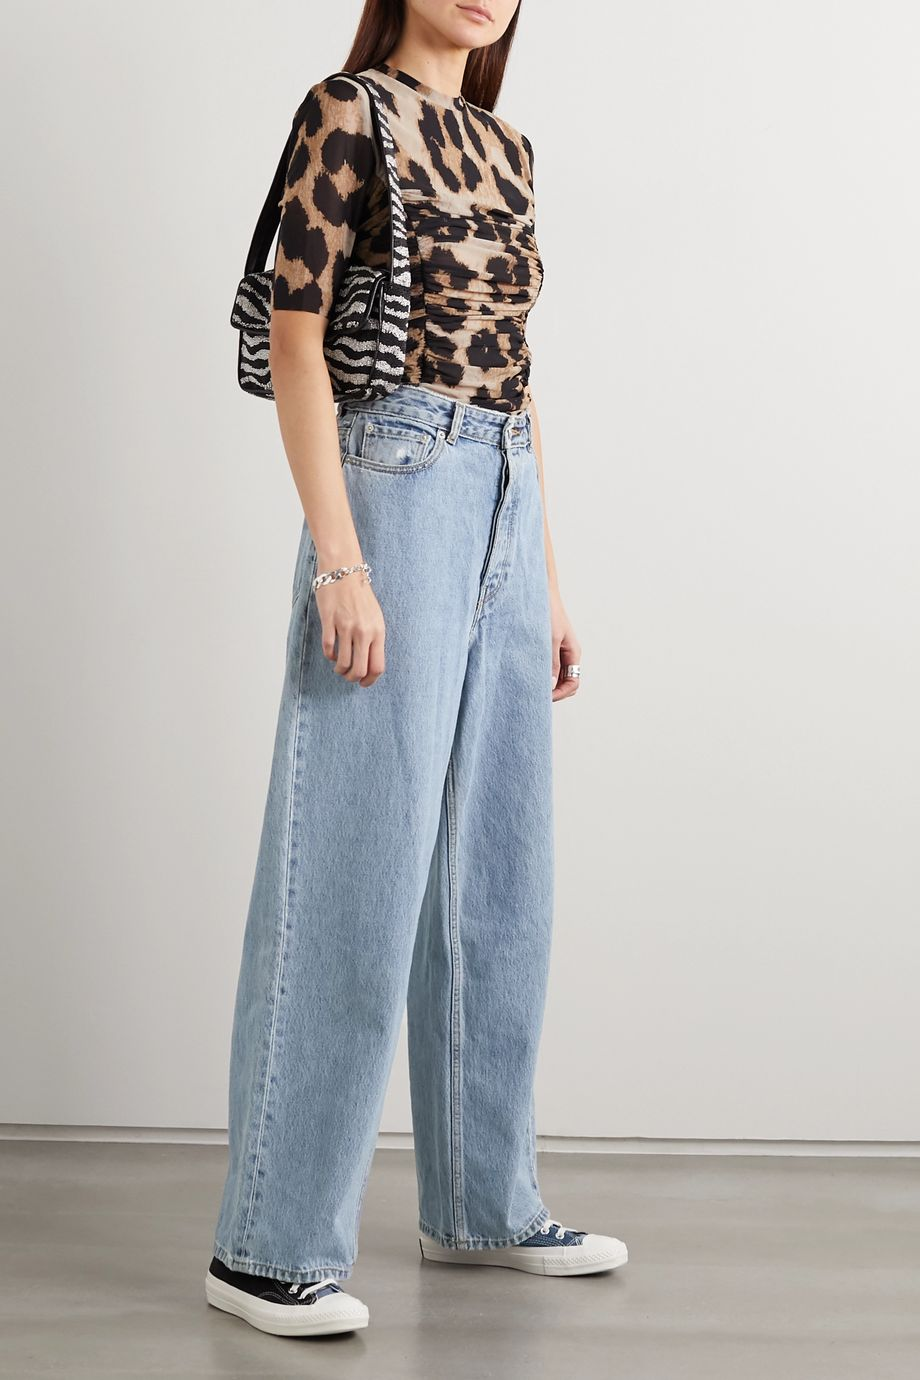 GANNI + NET SUSTAIN high-rise wide-leg jeans